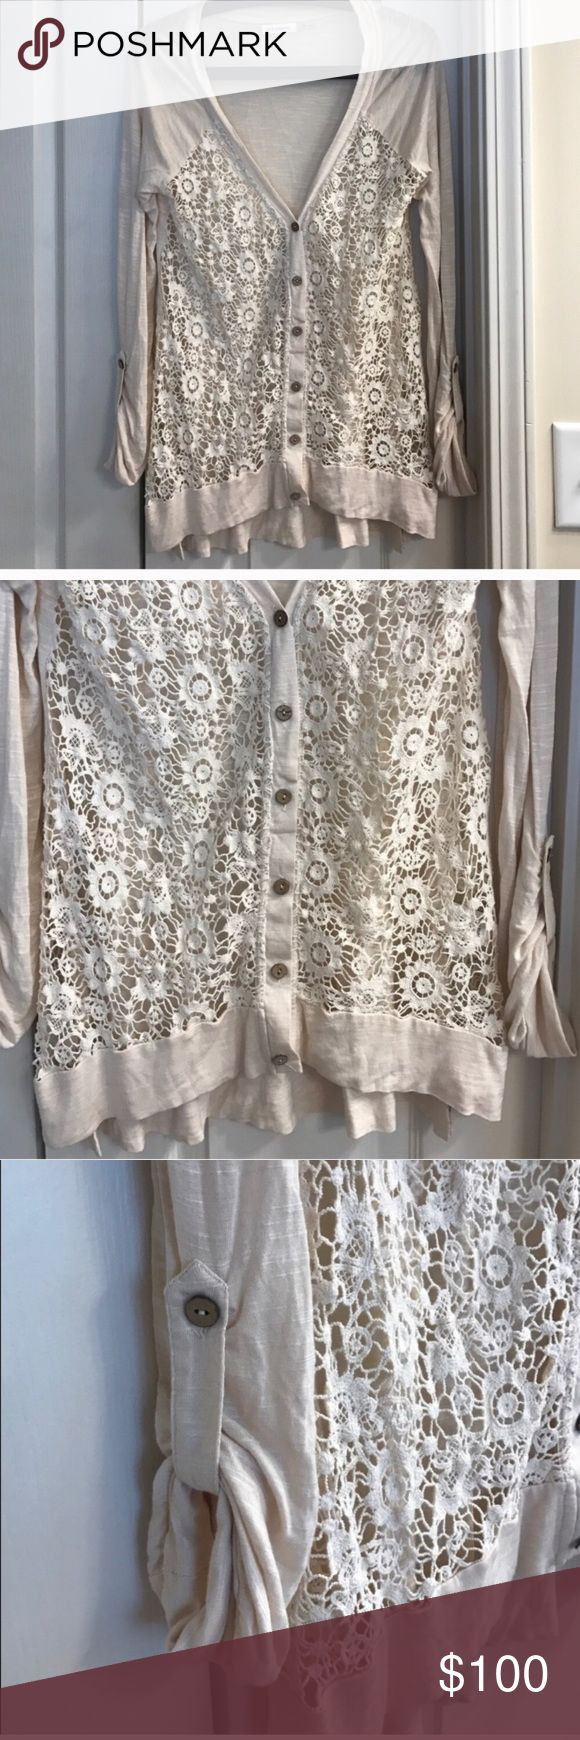 Size small beige lace floral Blu Pepper cardigan Size S beige lace floral Blu Pepper cardigan Blu Pepper Sweaters Cardigans